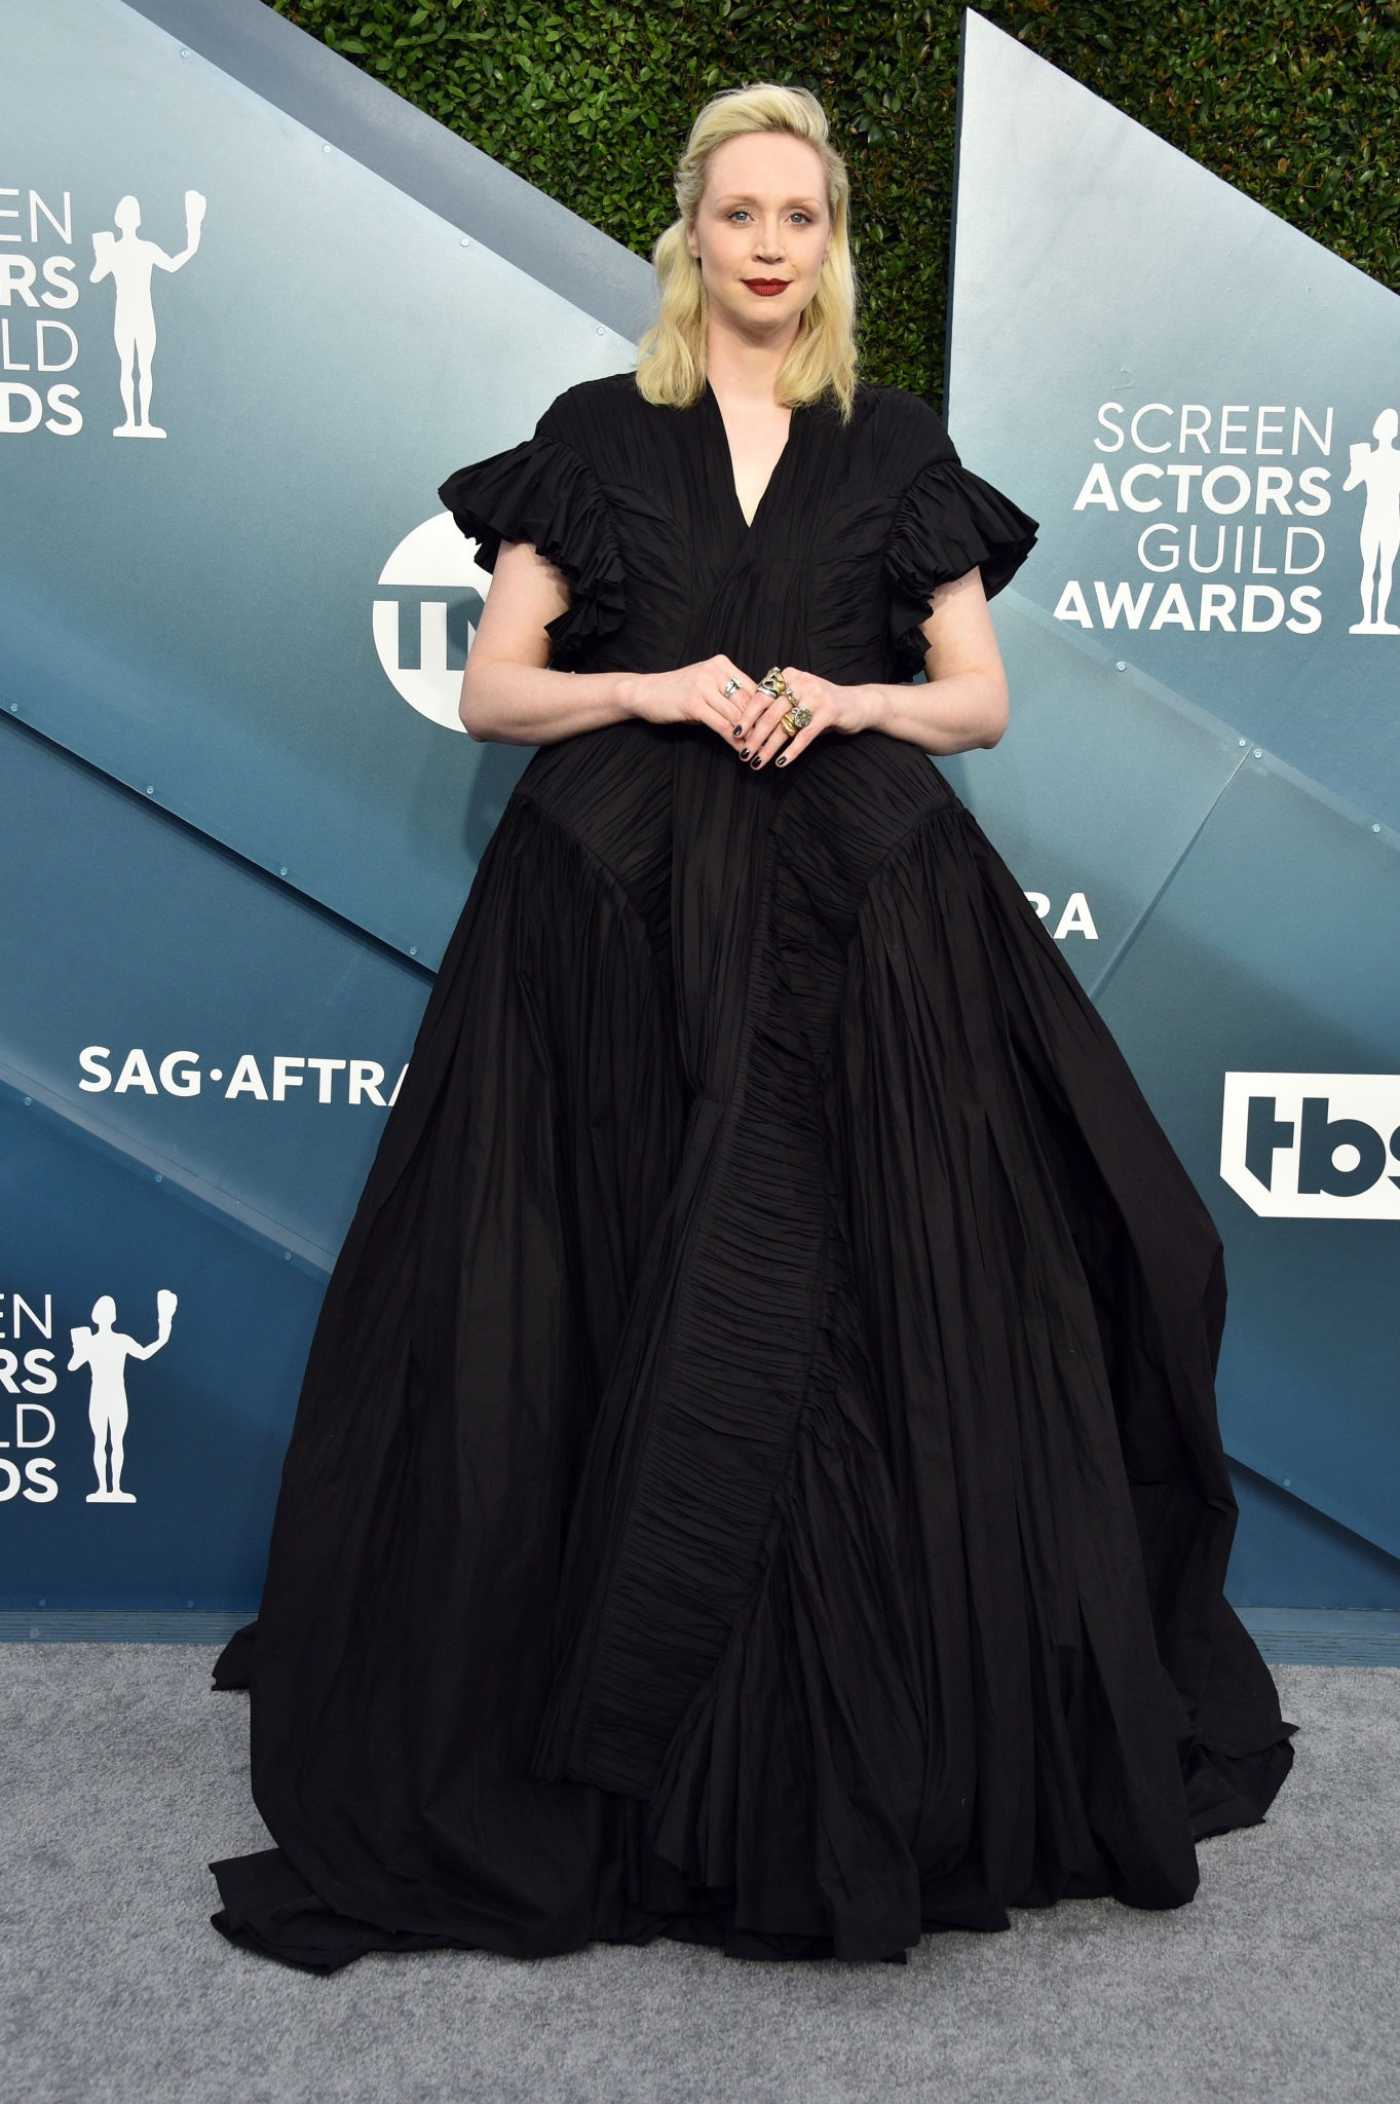 Gwendoline Christie Attends the 26th Annual Screen Actors Guild Awards in Los Angeles 01/19/2020